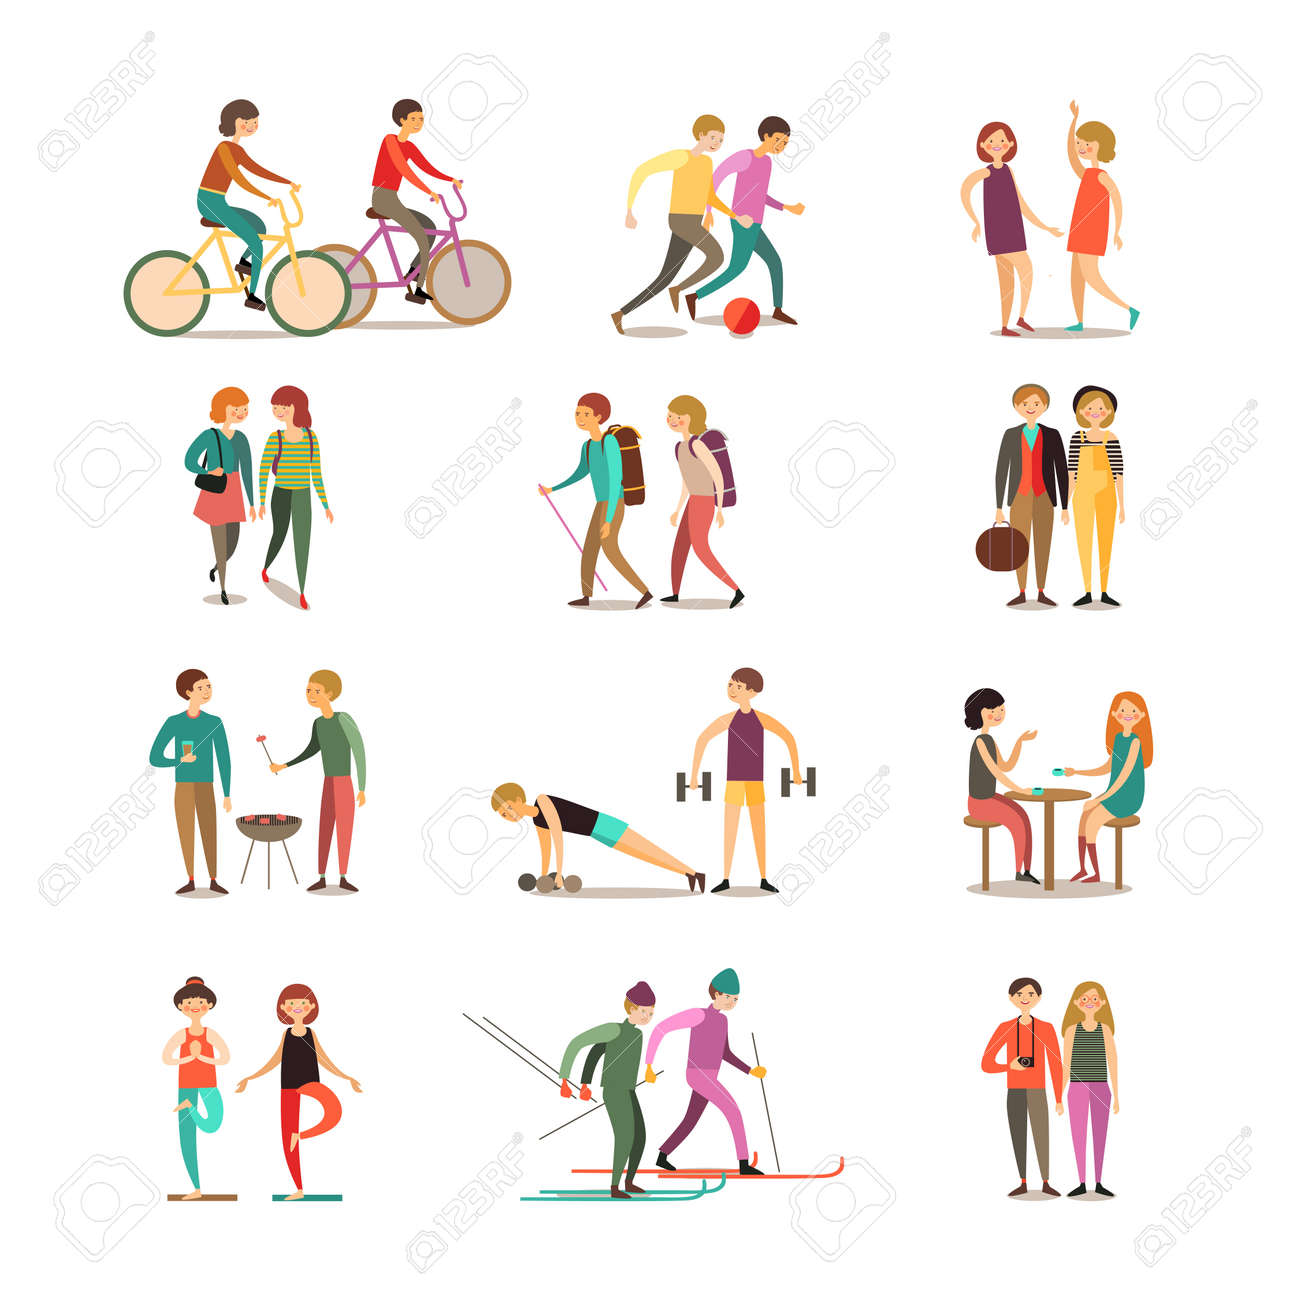 Friends and hobbies decorative icons set with hiking dancing soccer skiing barbecue sightseeing isolated vector illustration - 165598648